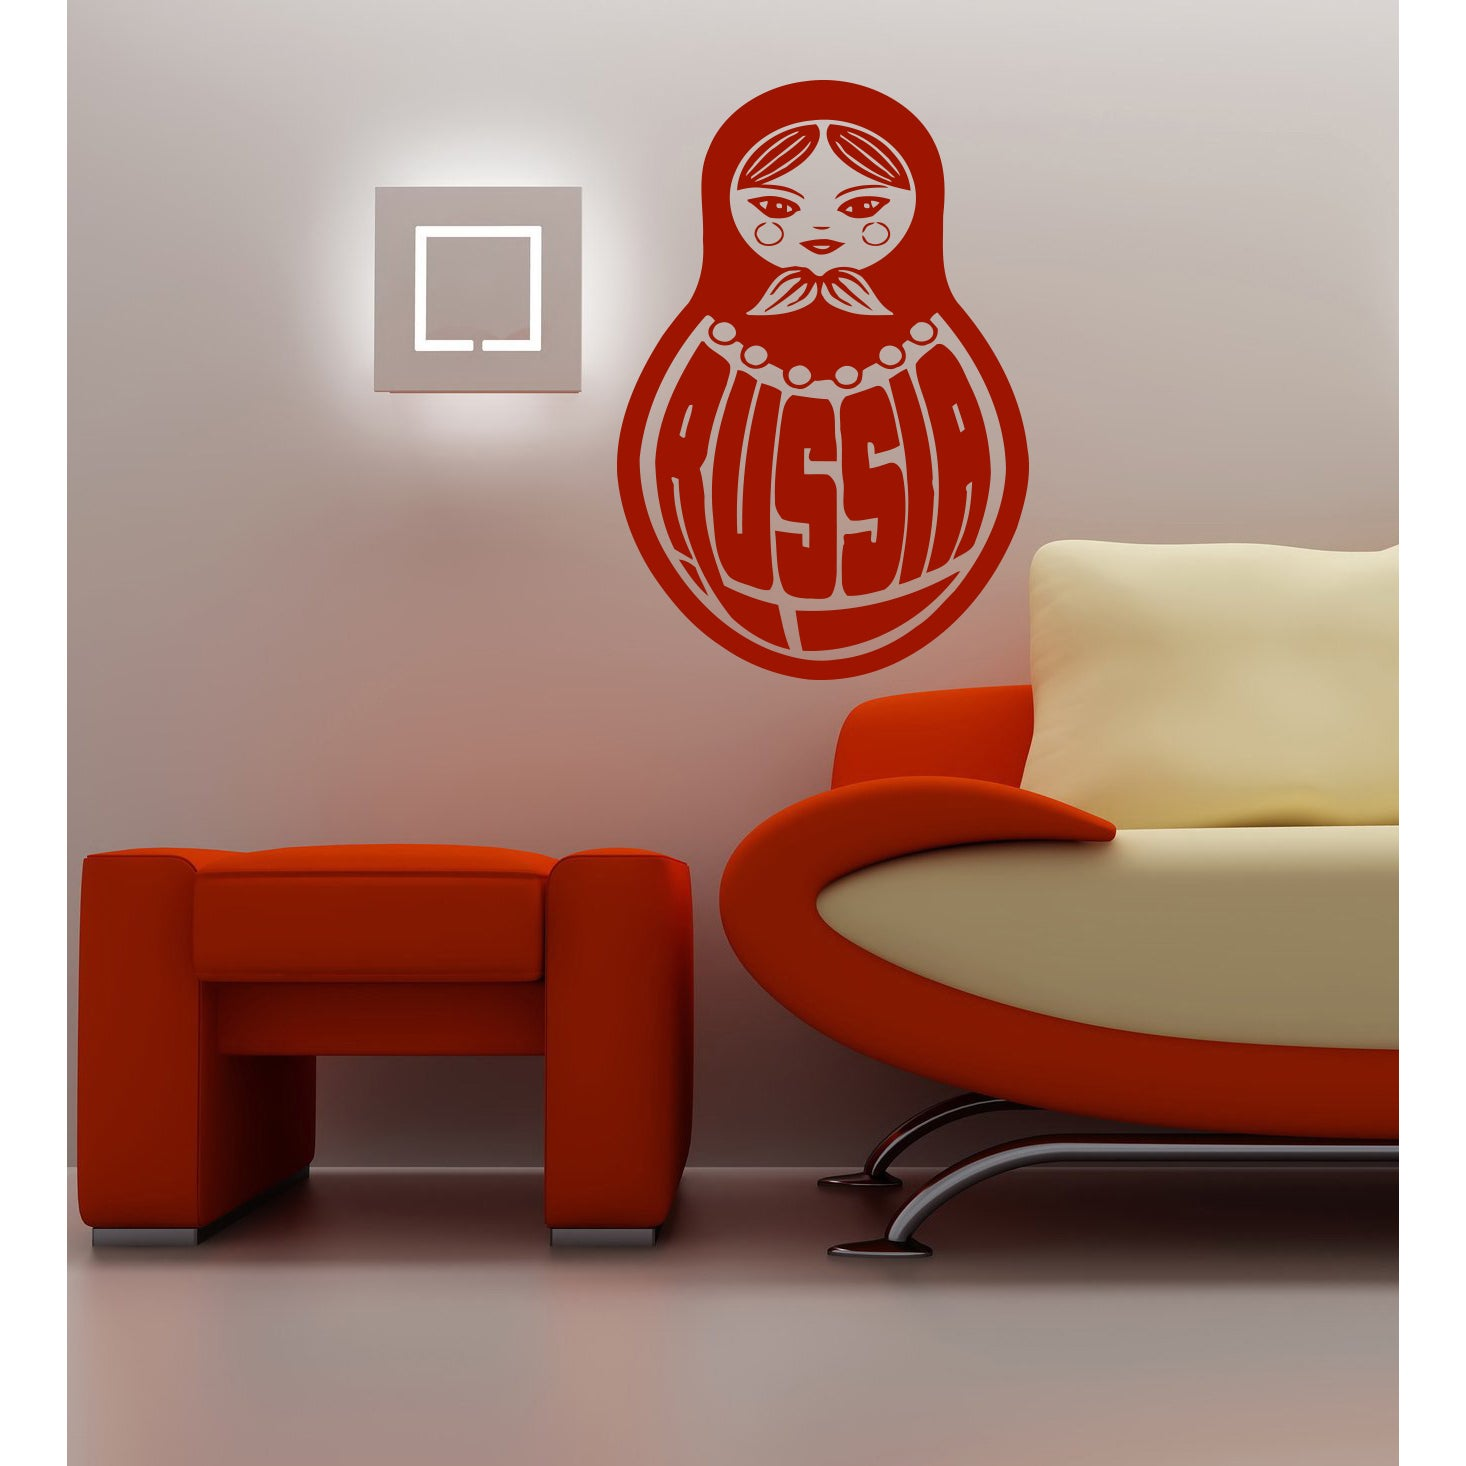 Russian nesting doll Wall Art Sticker Decal Red (22 inche...